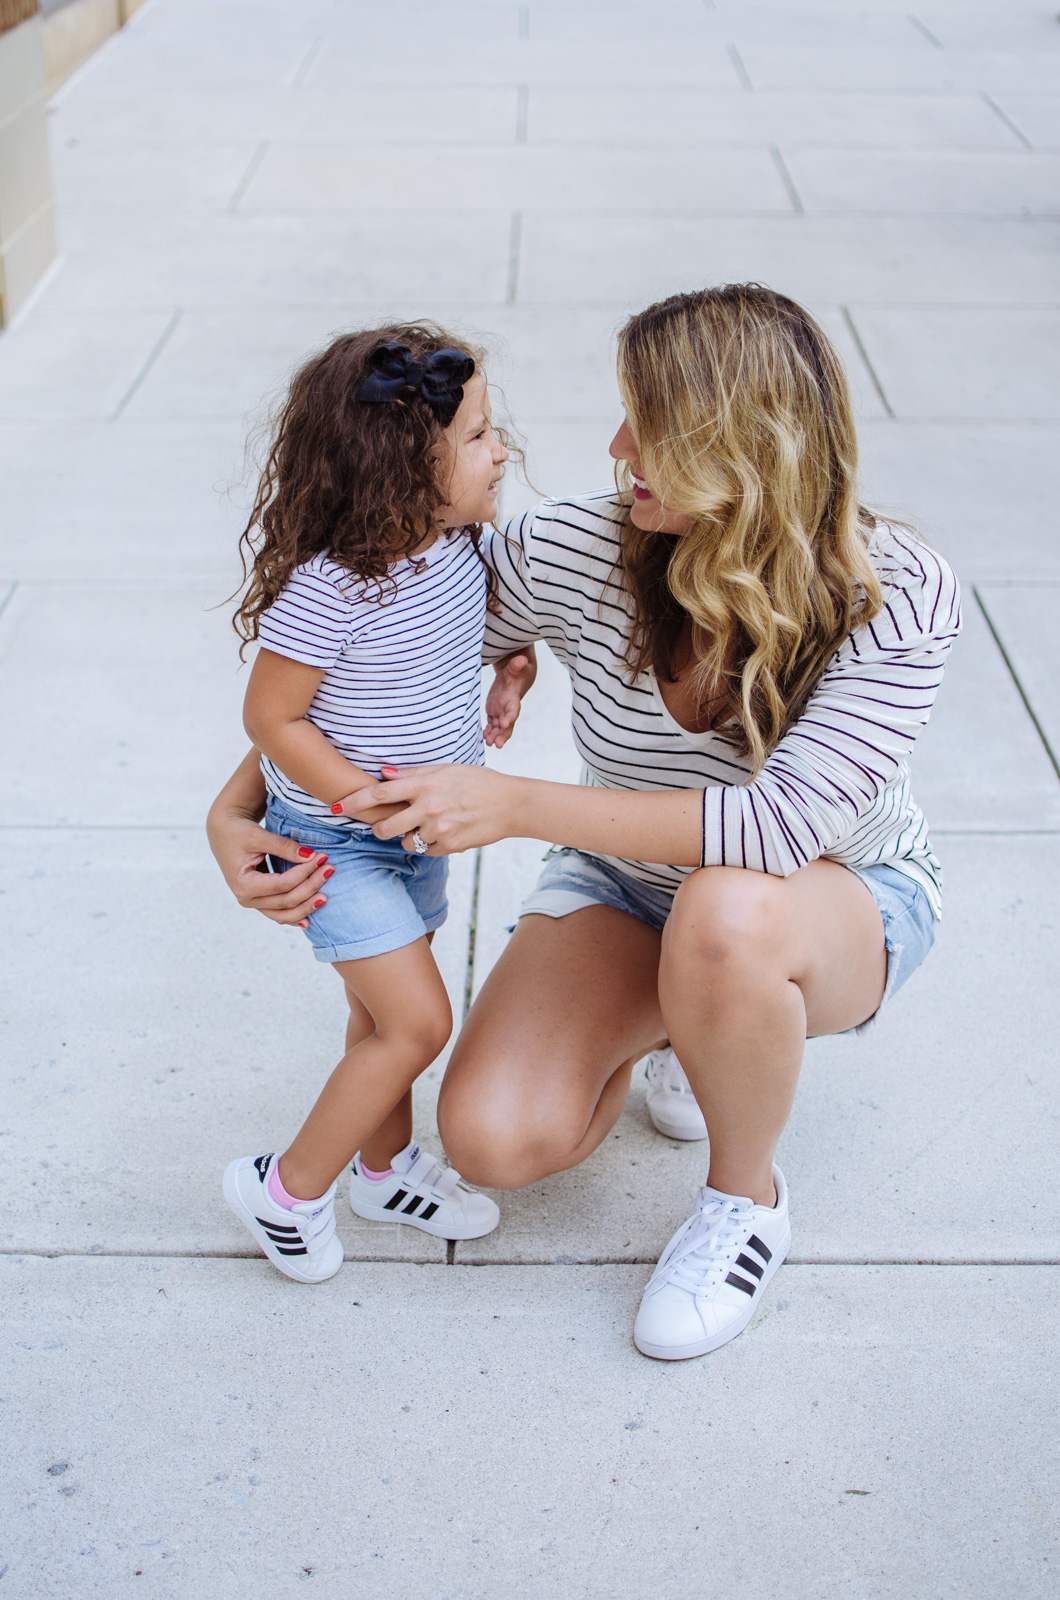 mommy daughter matching outfits - stripes and sneakers | For more mother daughter outfits, head to bylaurenm.com!